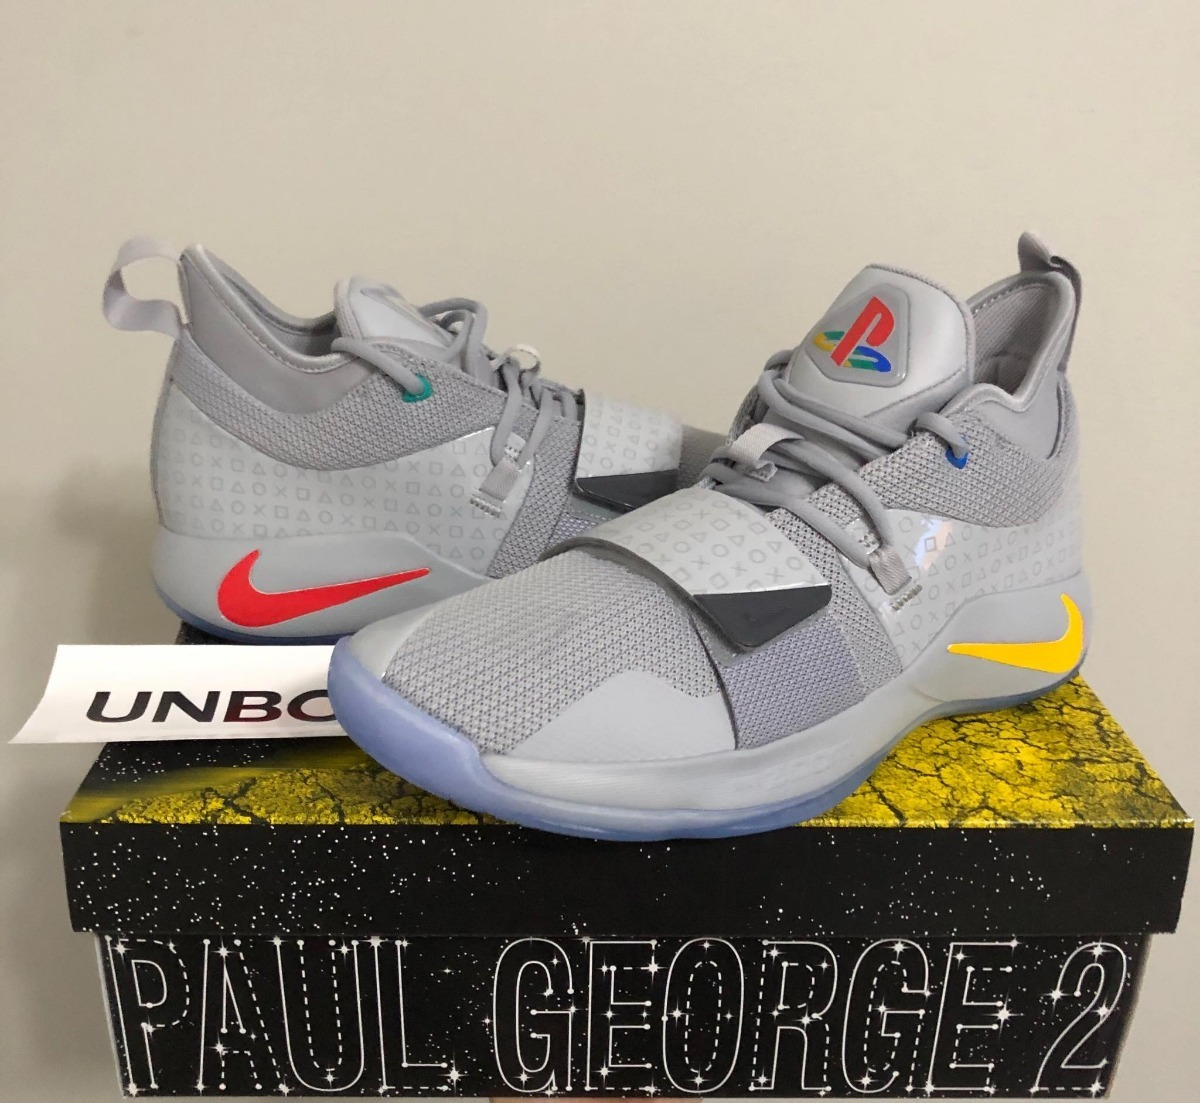 100% authentic 0a395 8cba8 Tenis Nike X Playstation Paul George 2.5 Wolf Grey